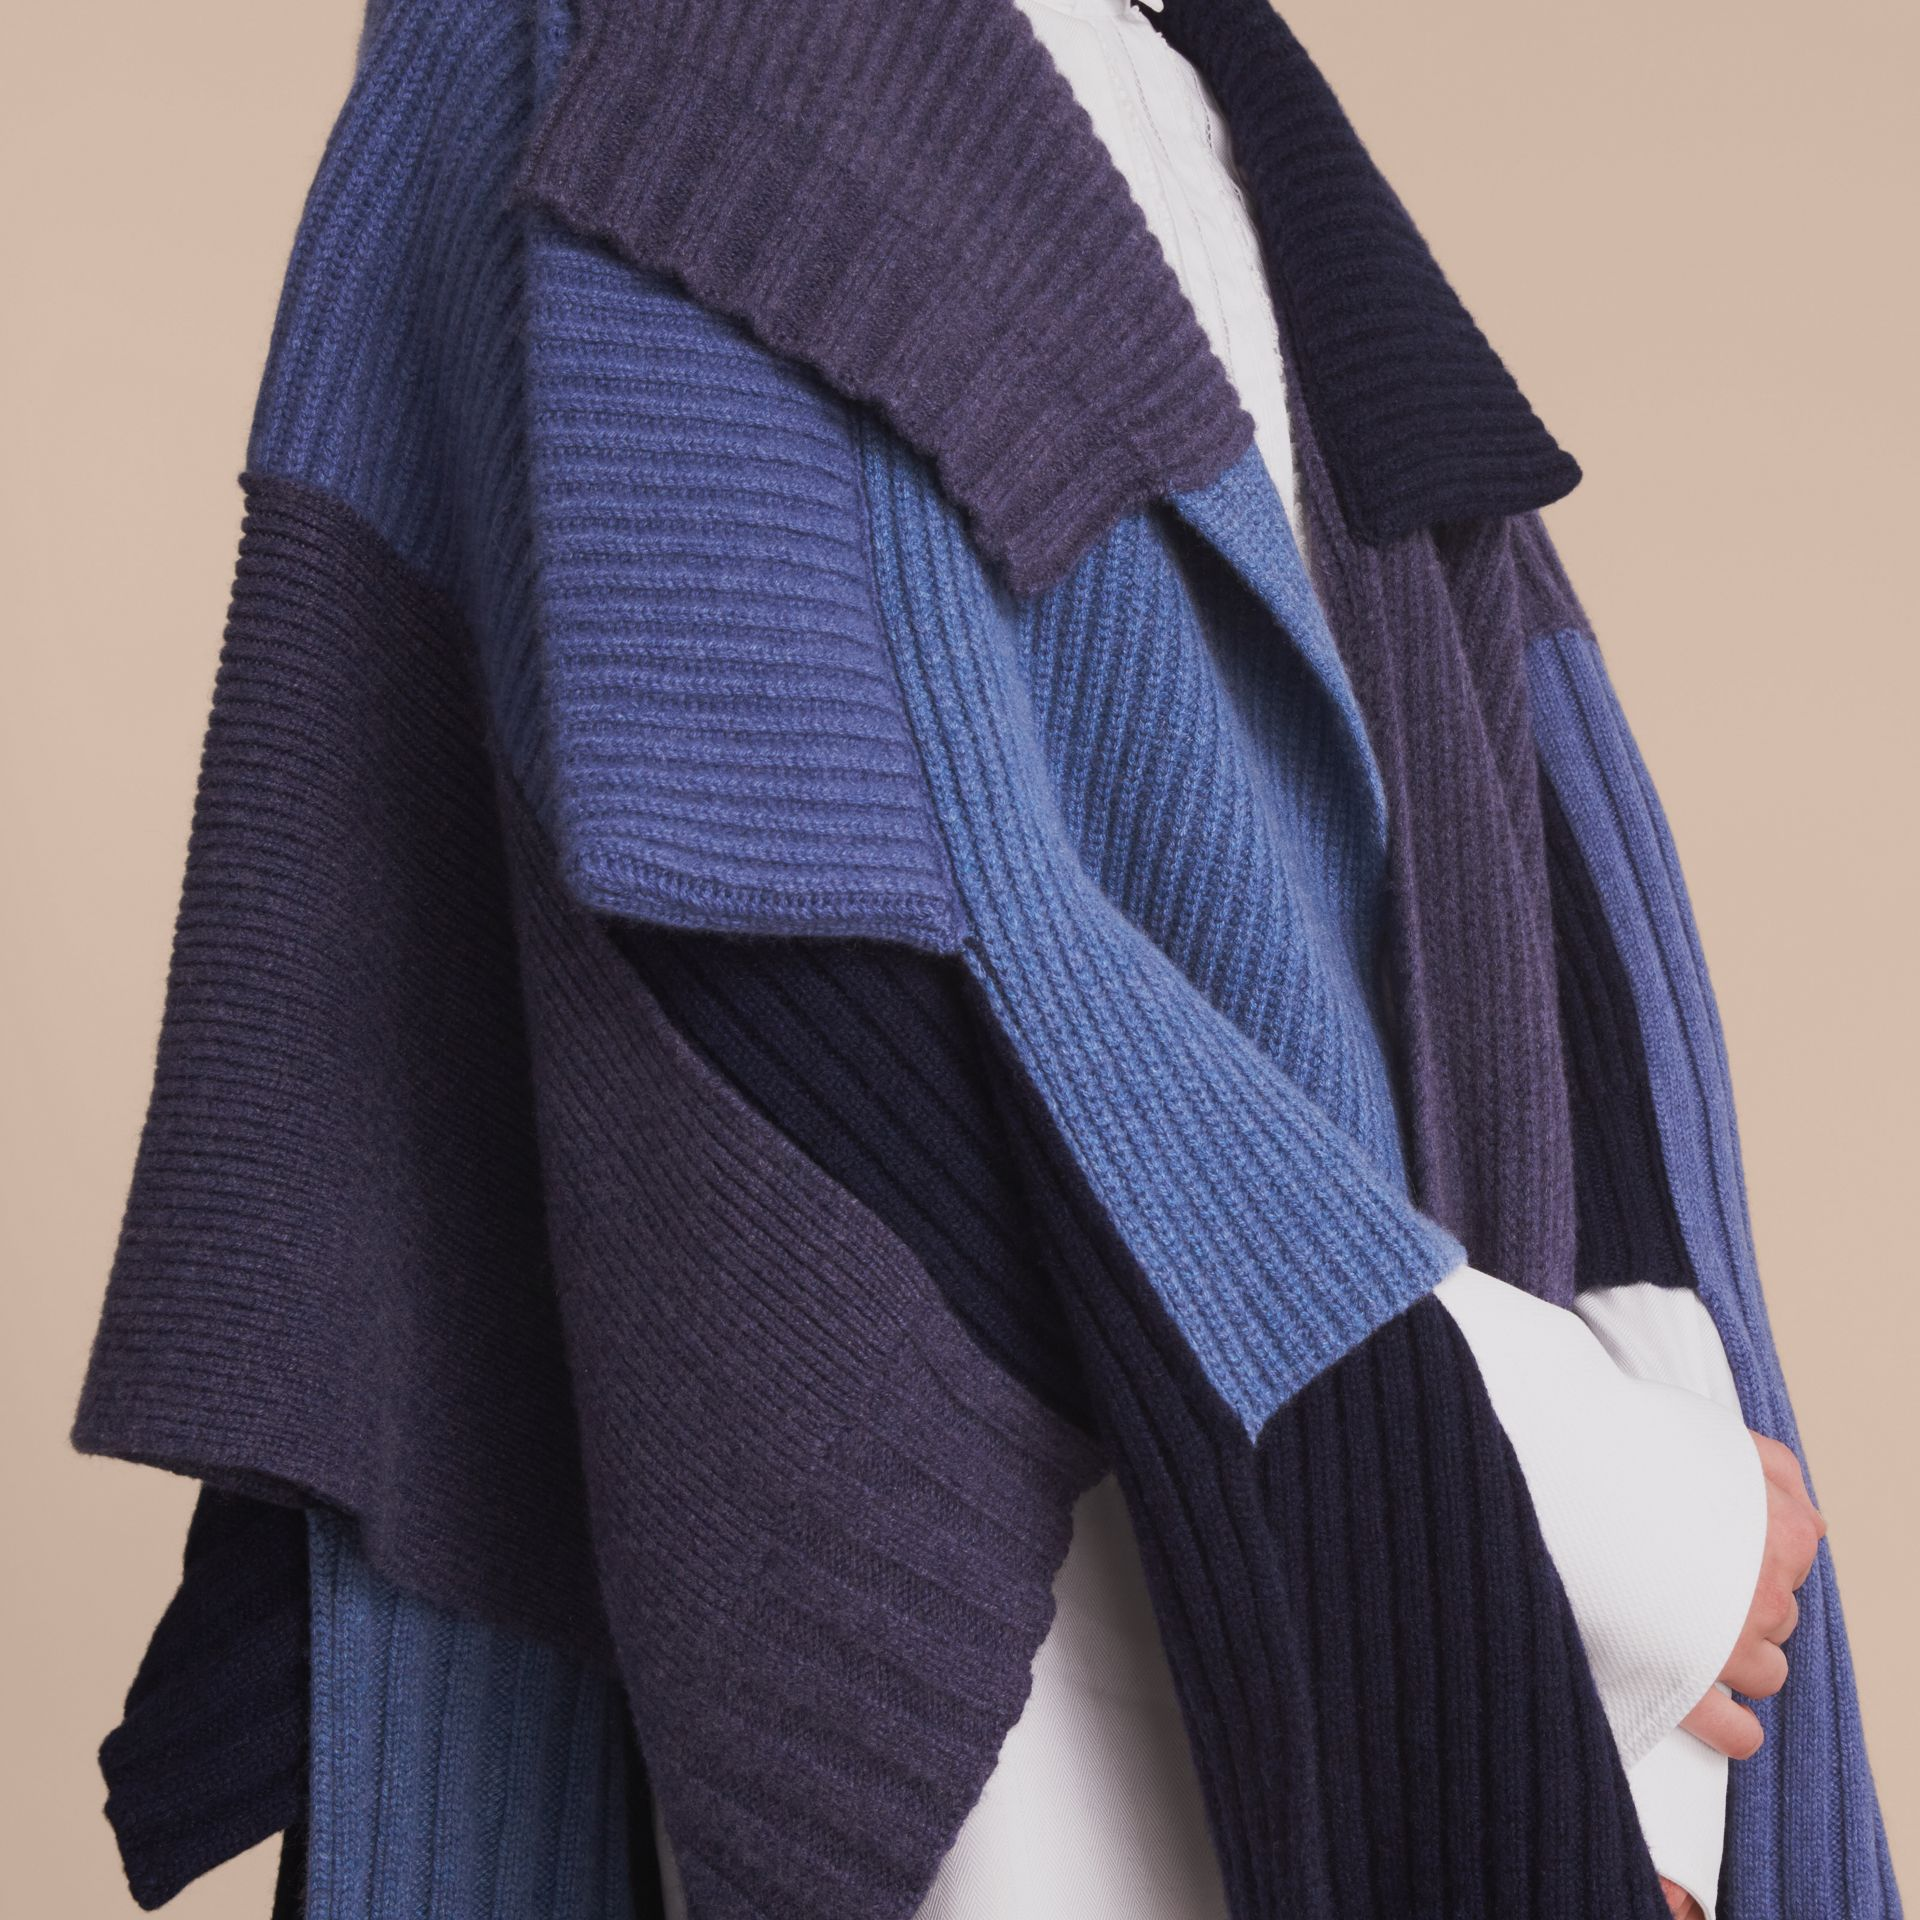 Wool Cashmere Patchwork Poncho in Carbon Blue - Women | Burberry Singapore - gallery image 5